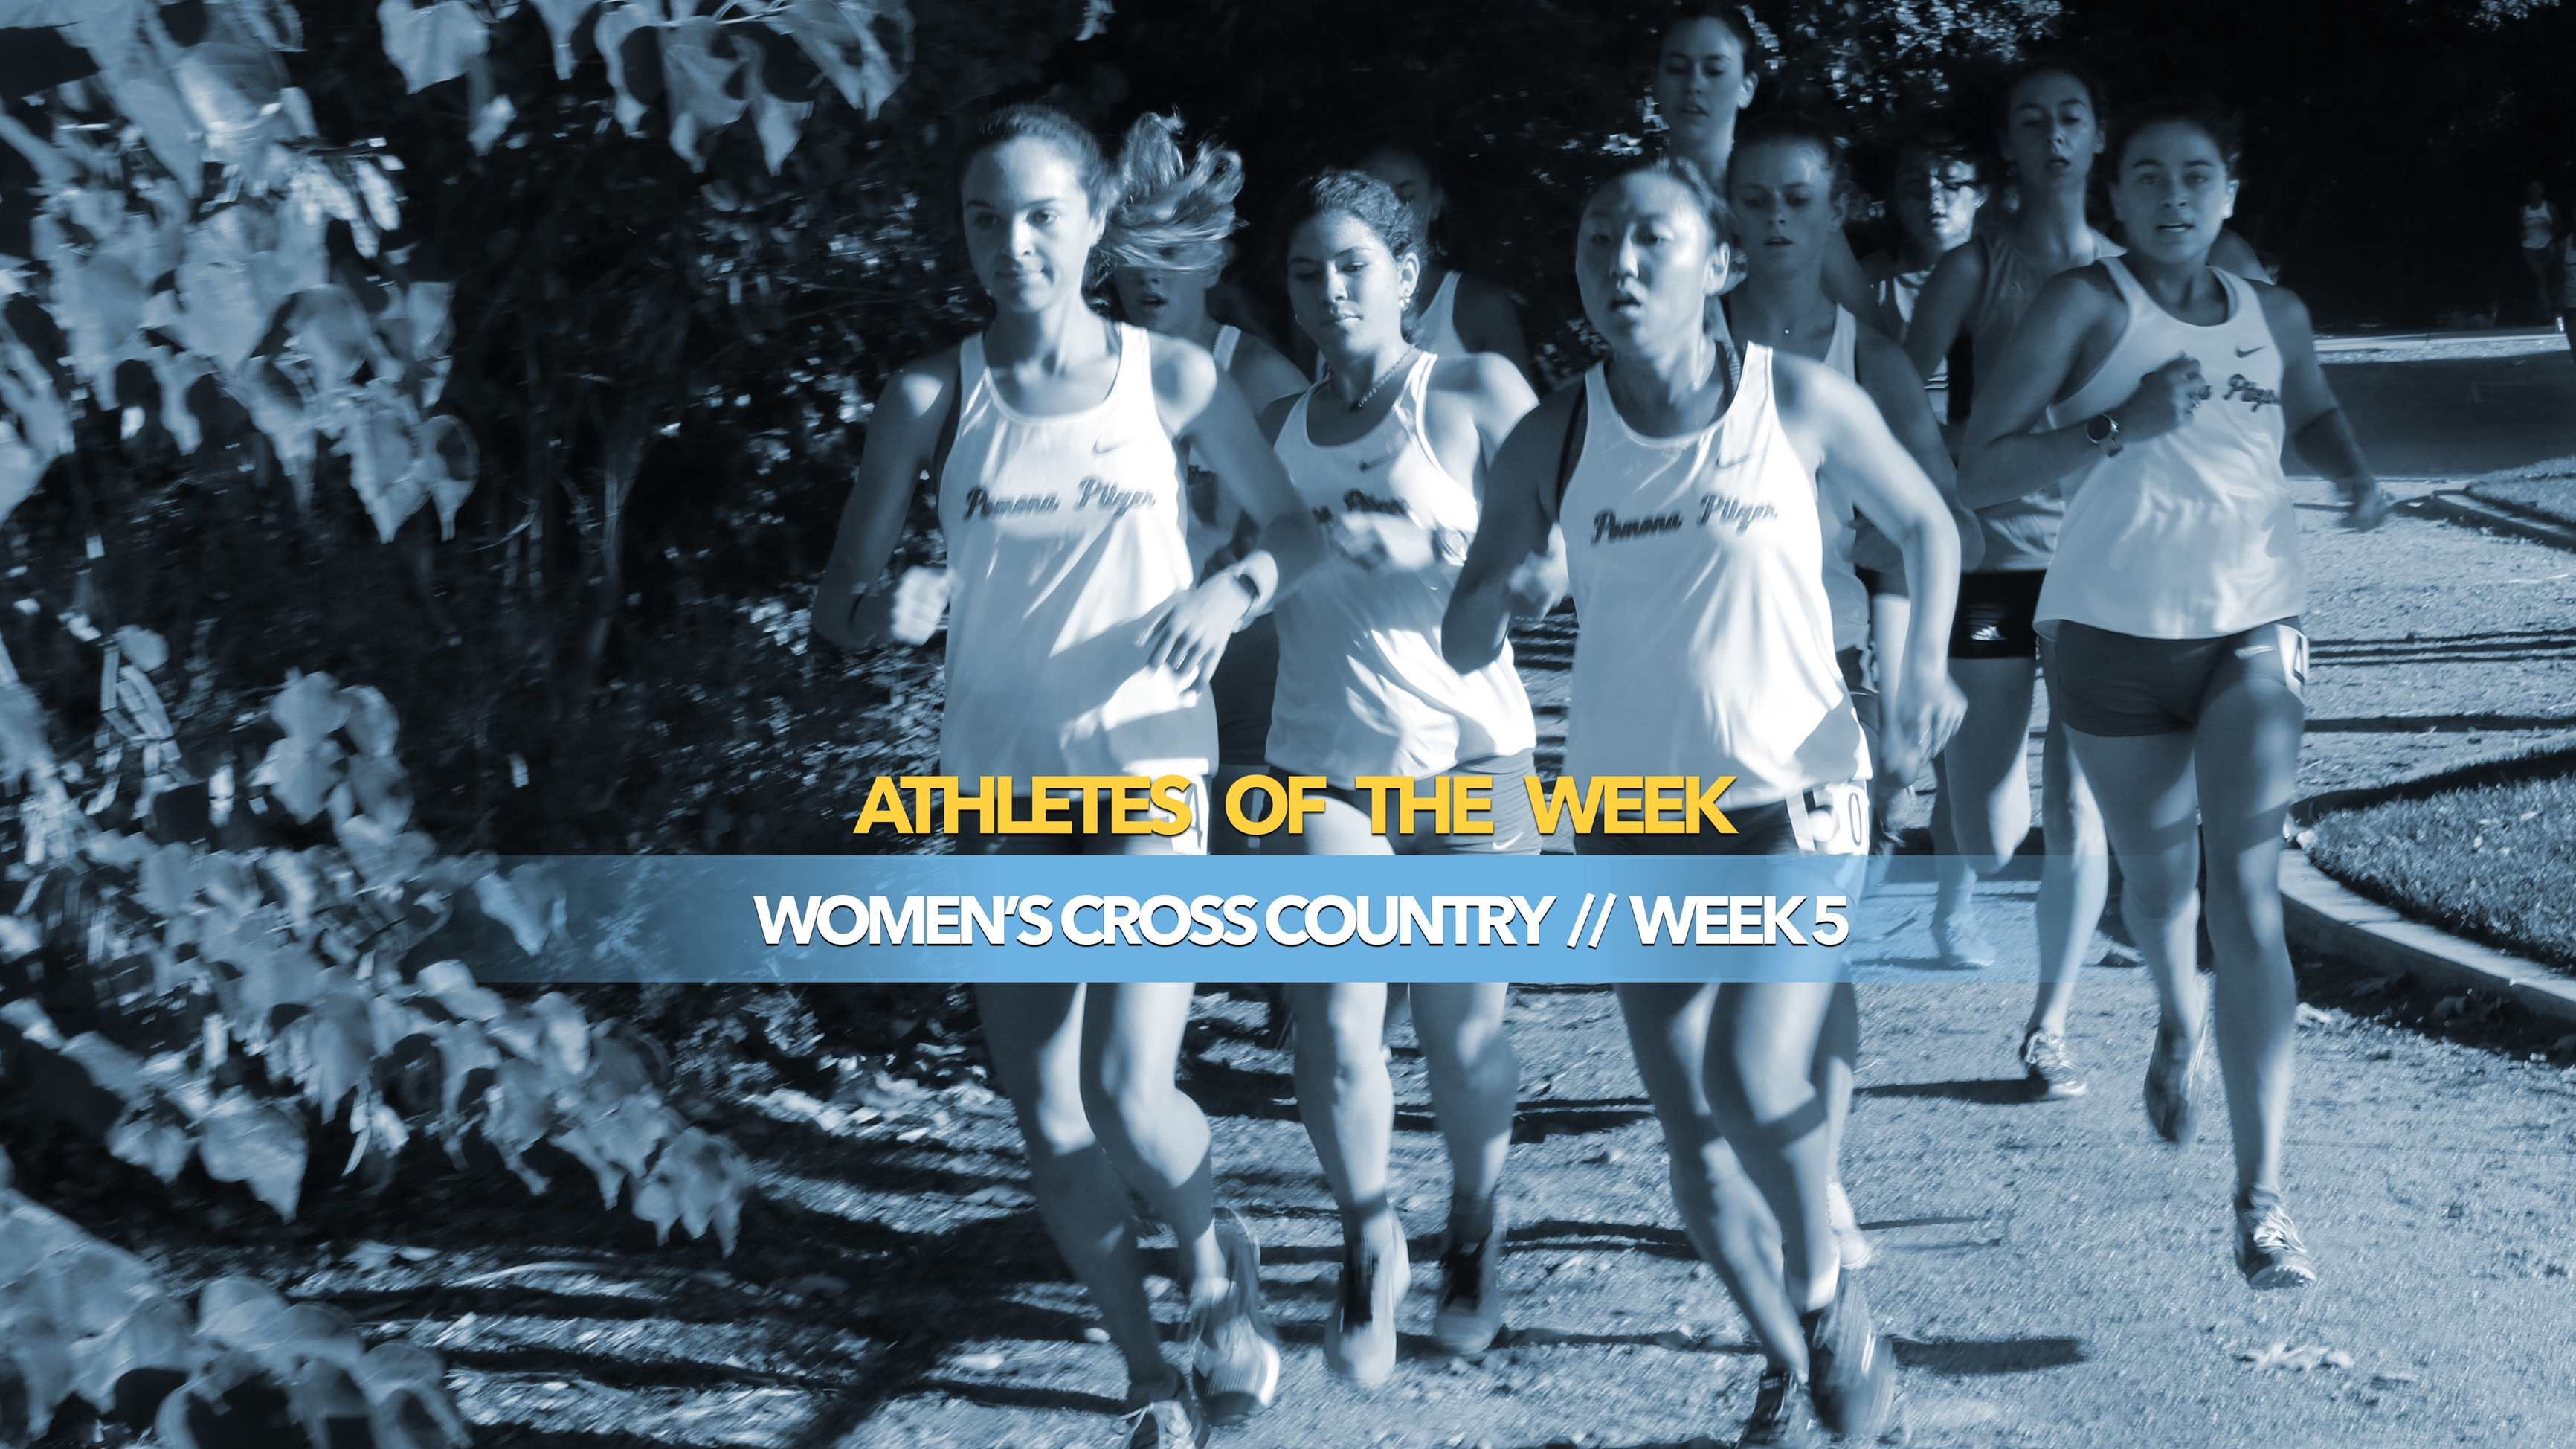 Women's Cross Country Athlete of the Week: September 30, 2019